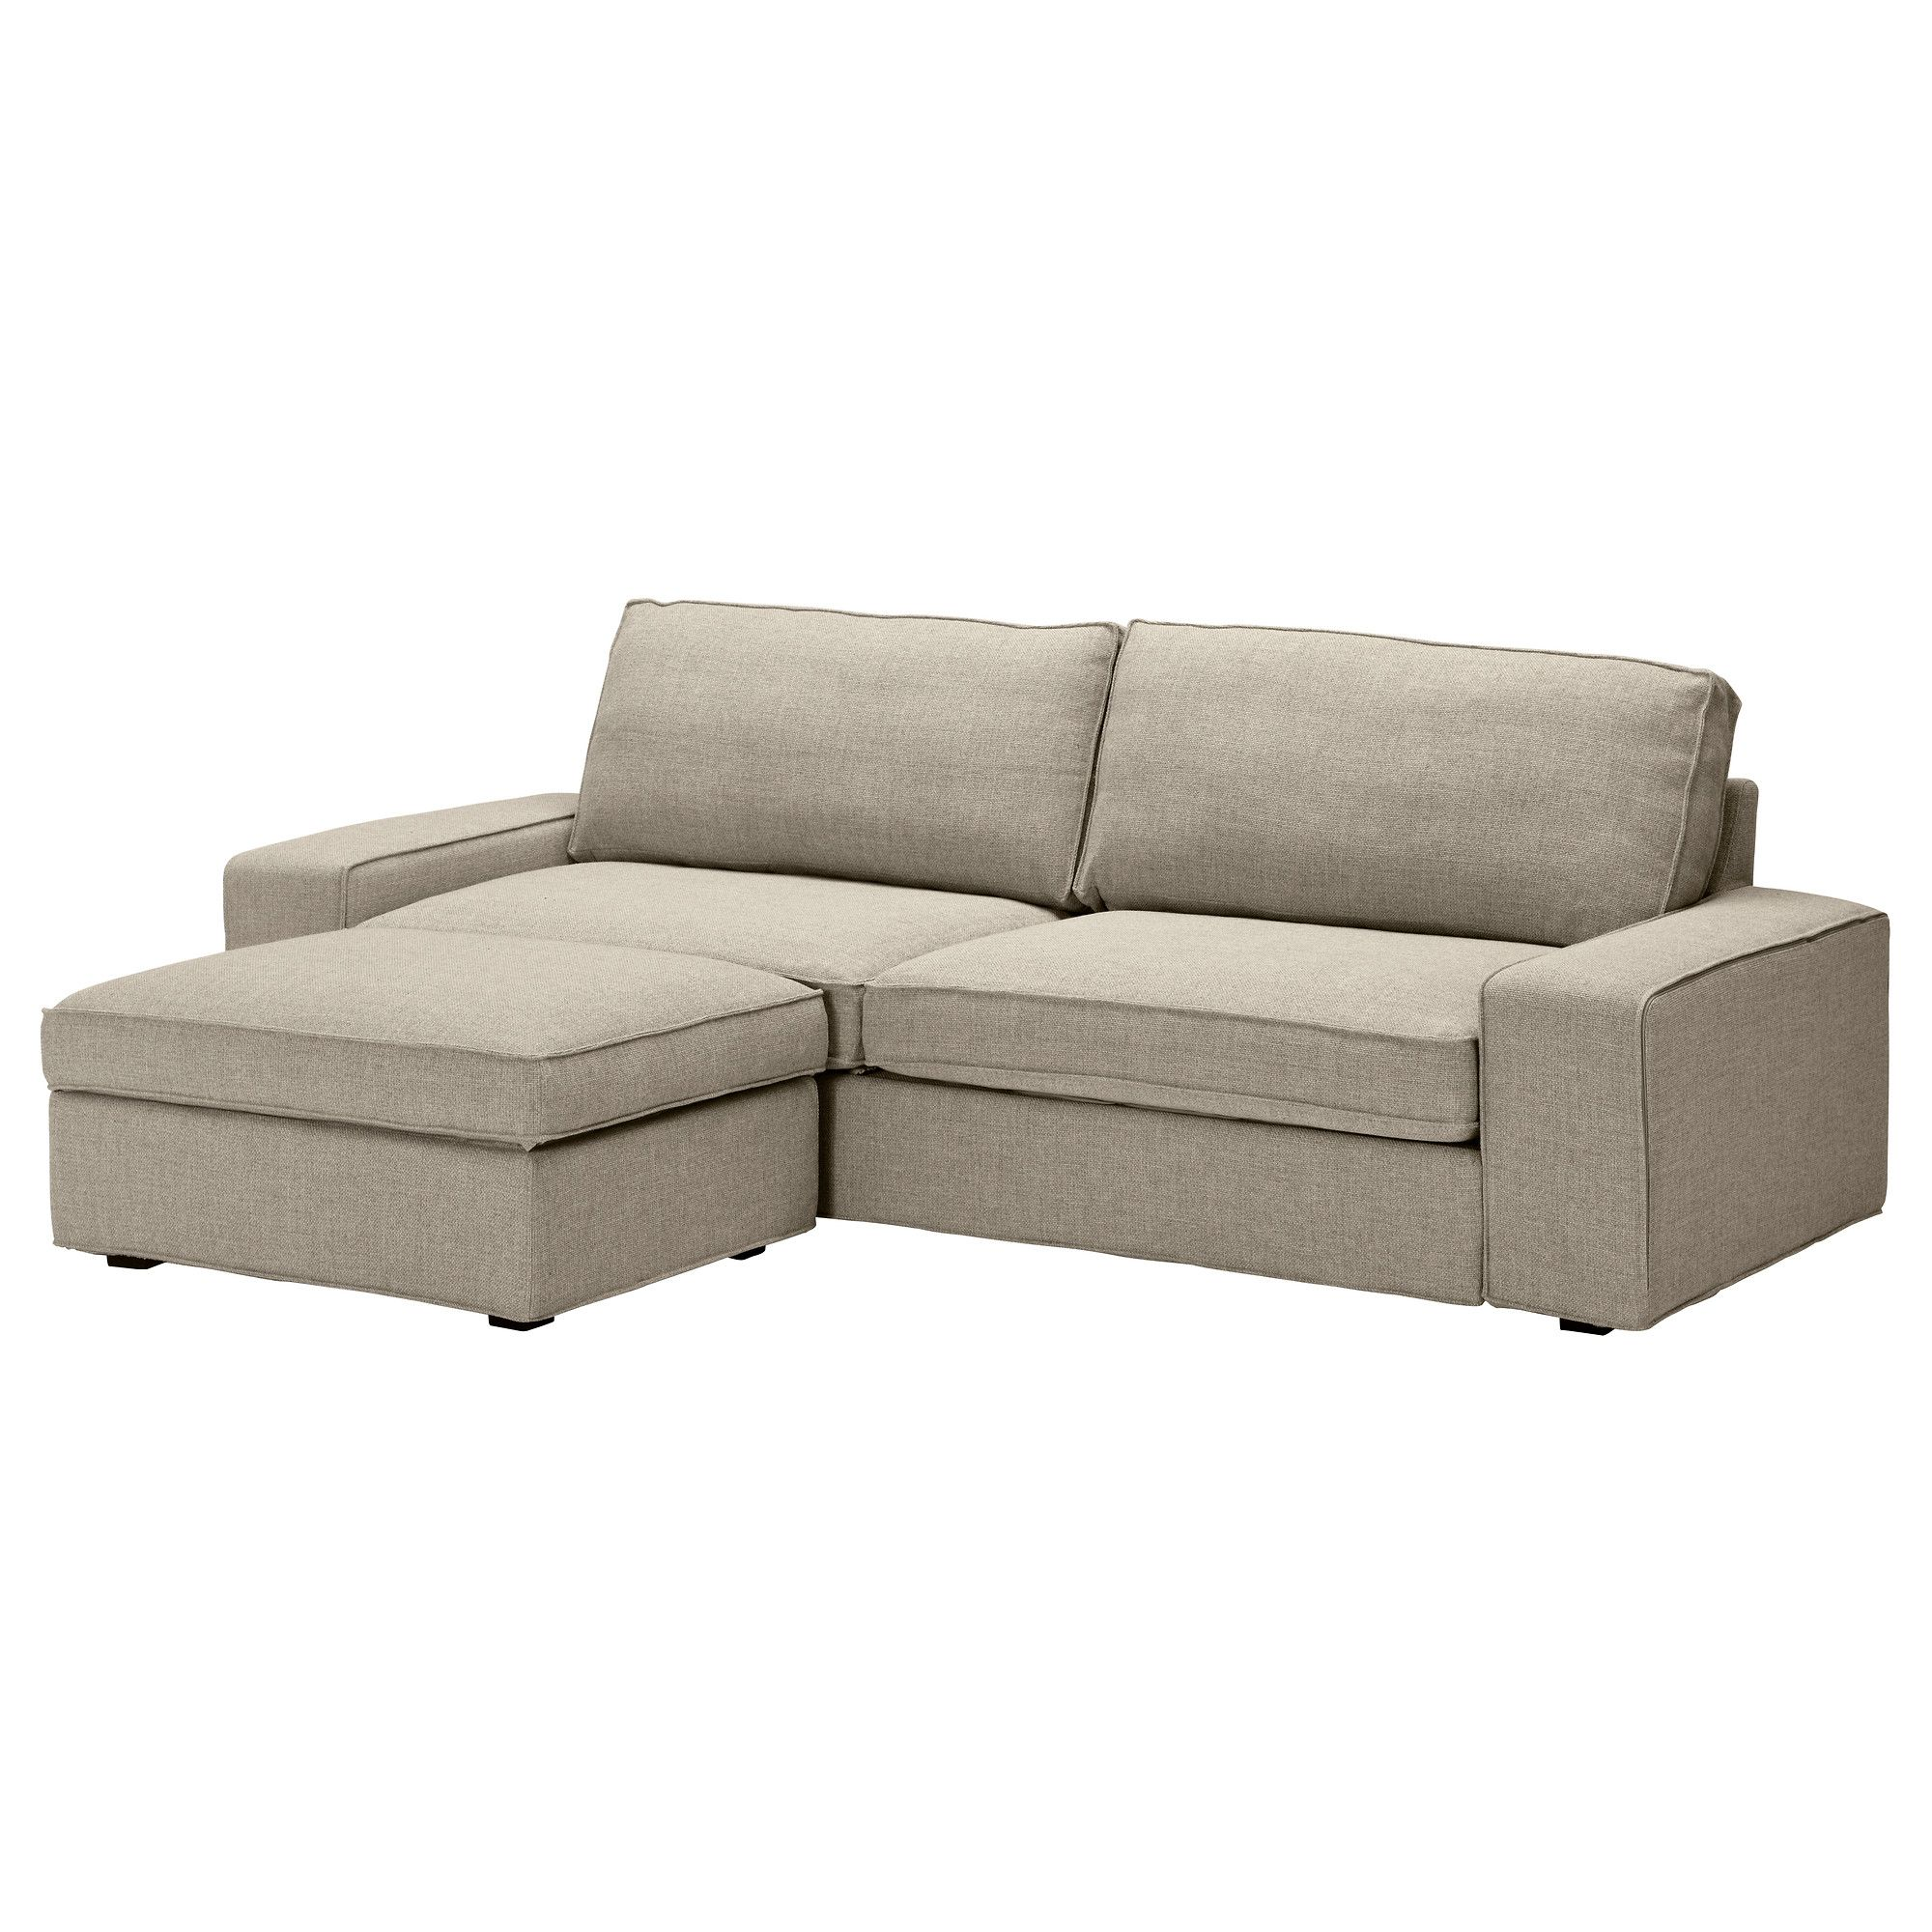 Bettsofas Ikea Schweiz Kivik Bettsofa Mit Hocker Tenö Hellgrau Furniture Pinterest